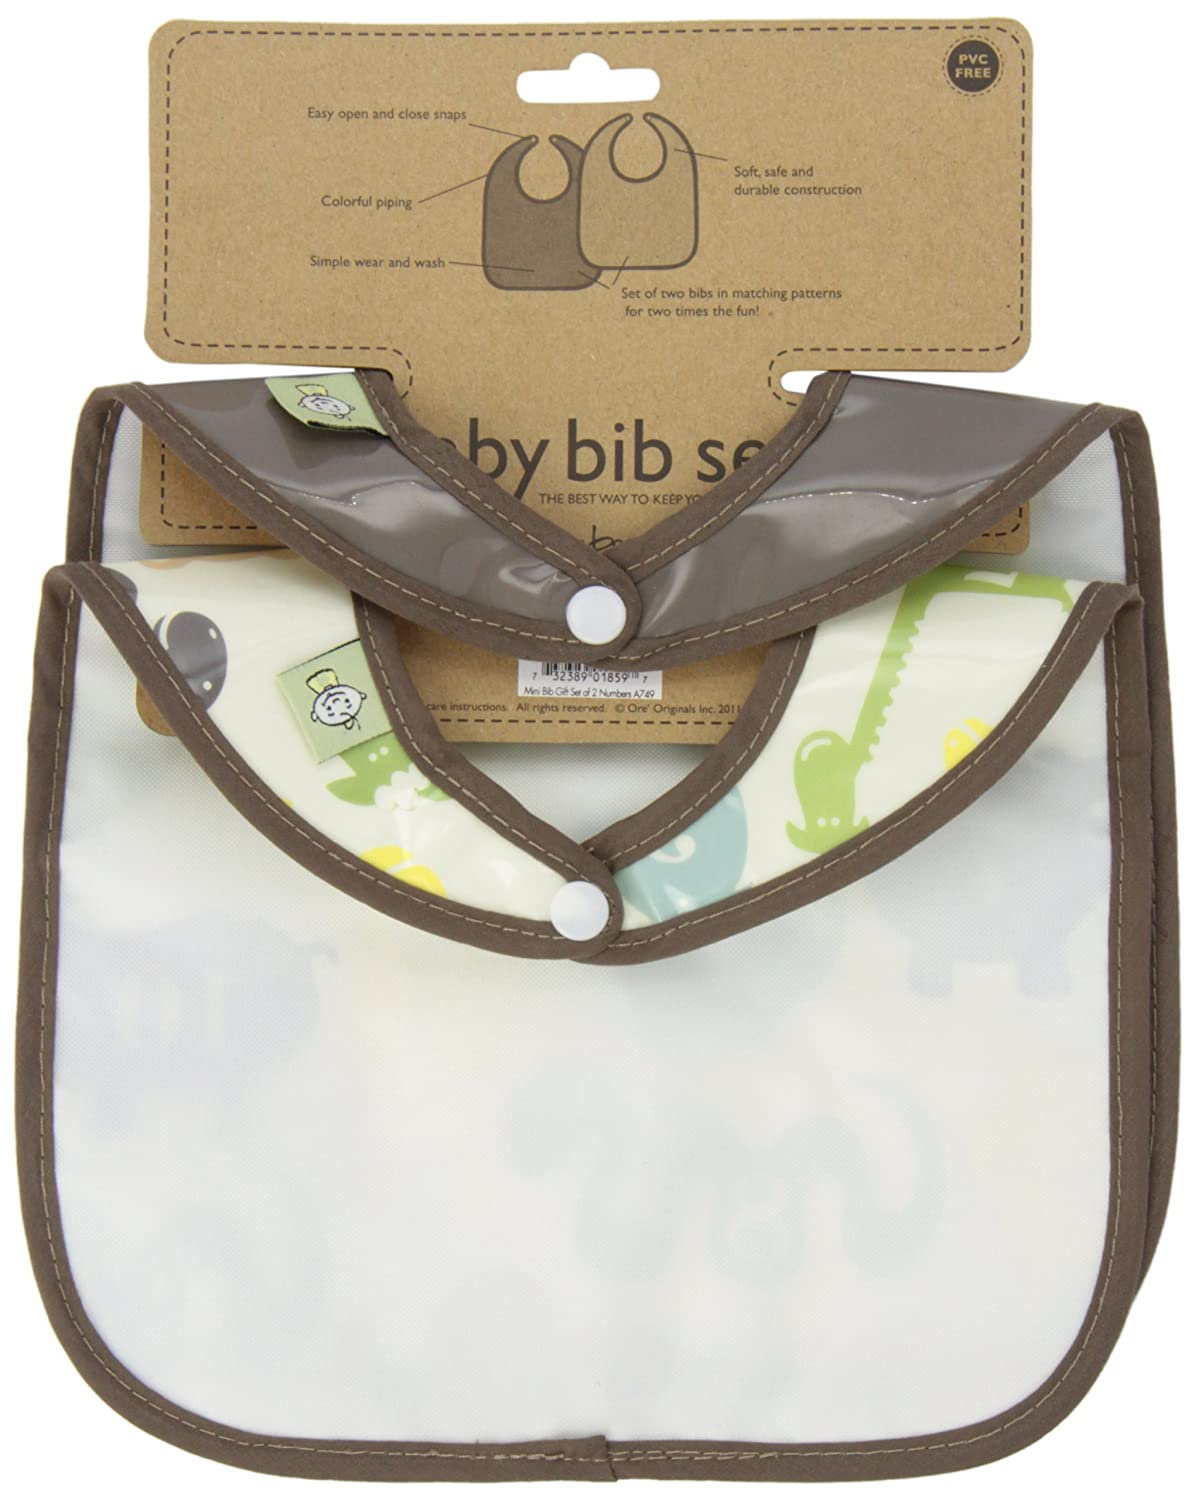 Sugarbooger Mini Bib Gift Set Retro Robot 2 Count Baby Oops Stary Back Pack Get Free Easy Click Ladybird